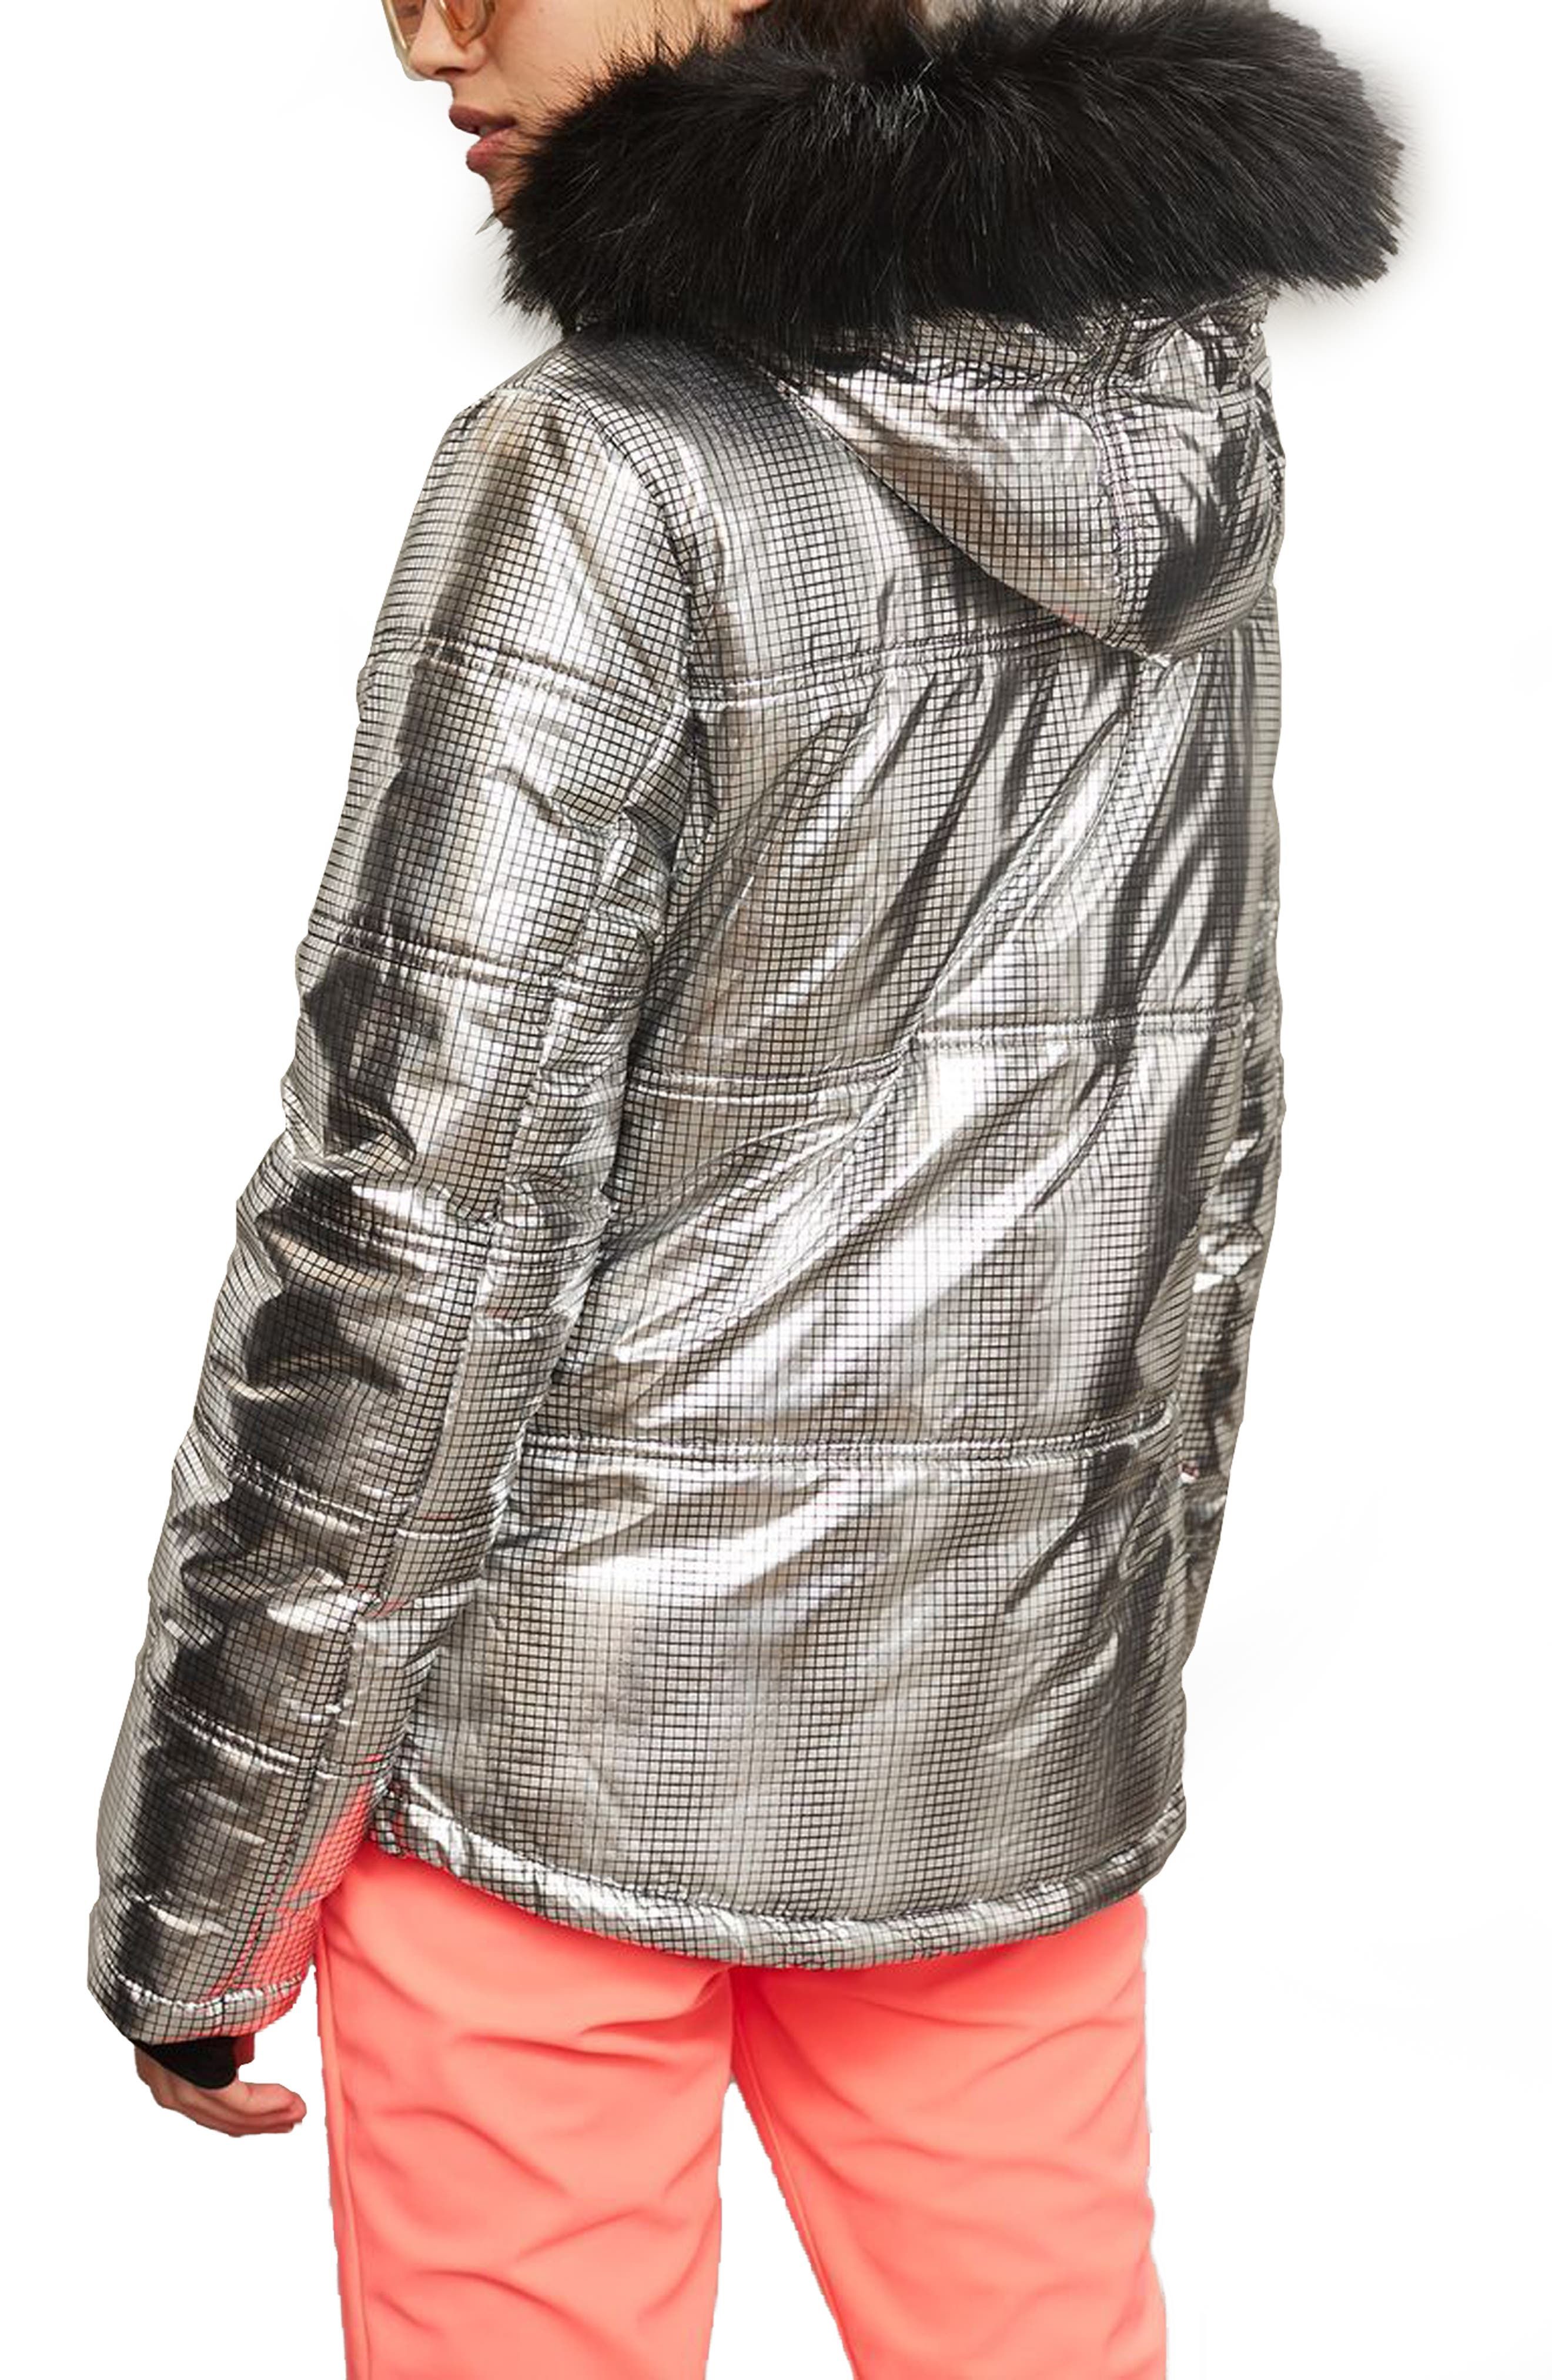 SNO Rio Faux Fur Hood Metallic Puffer Jacket,                             Alternate thumbnail 2, color,                             040